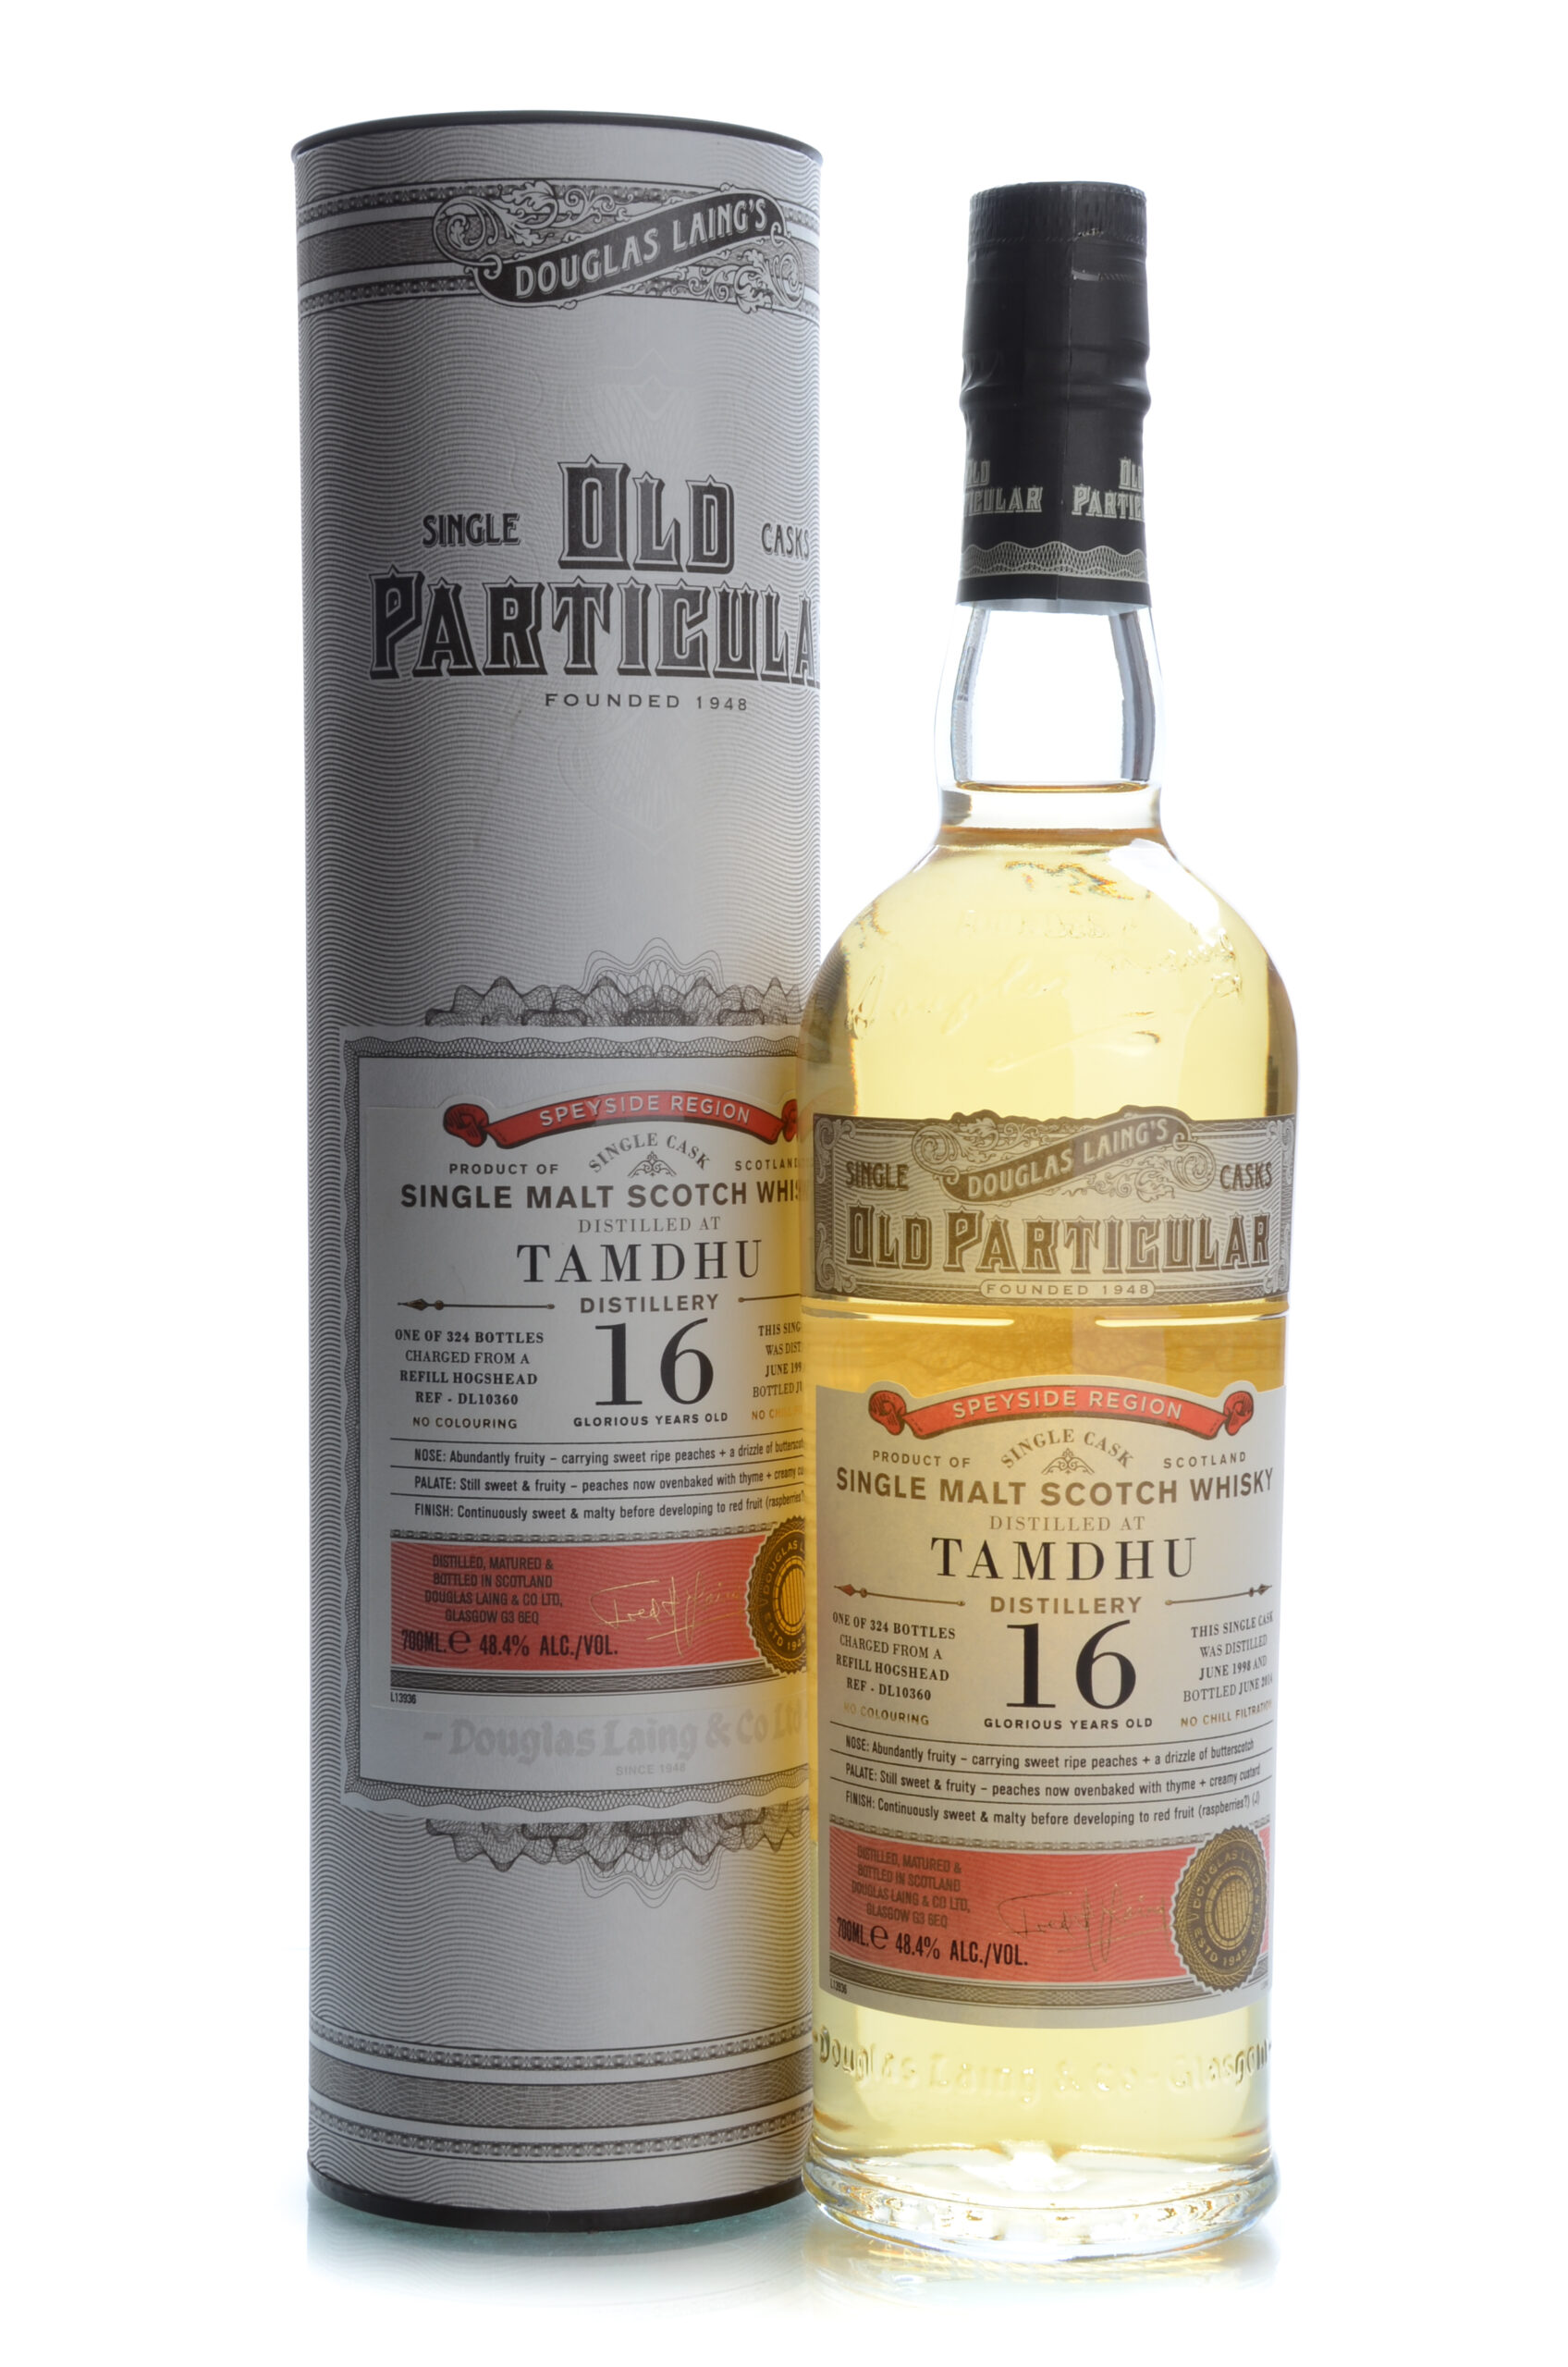 Old Particular Tamdhu 16 years